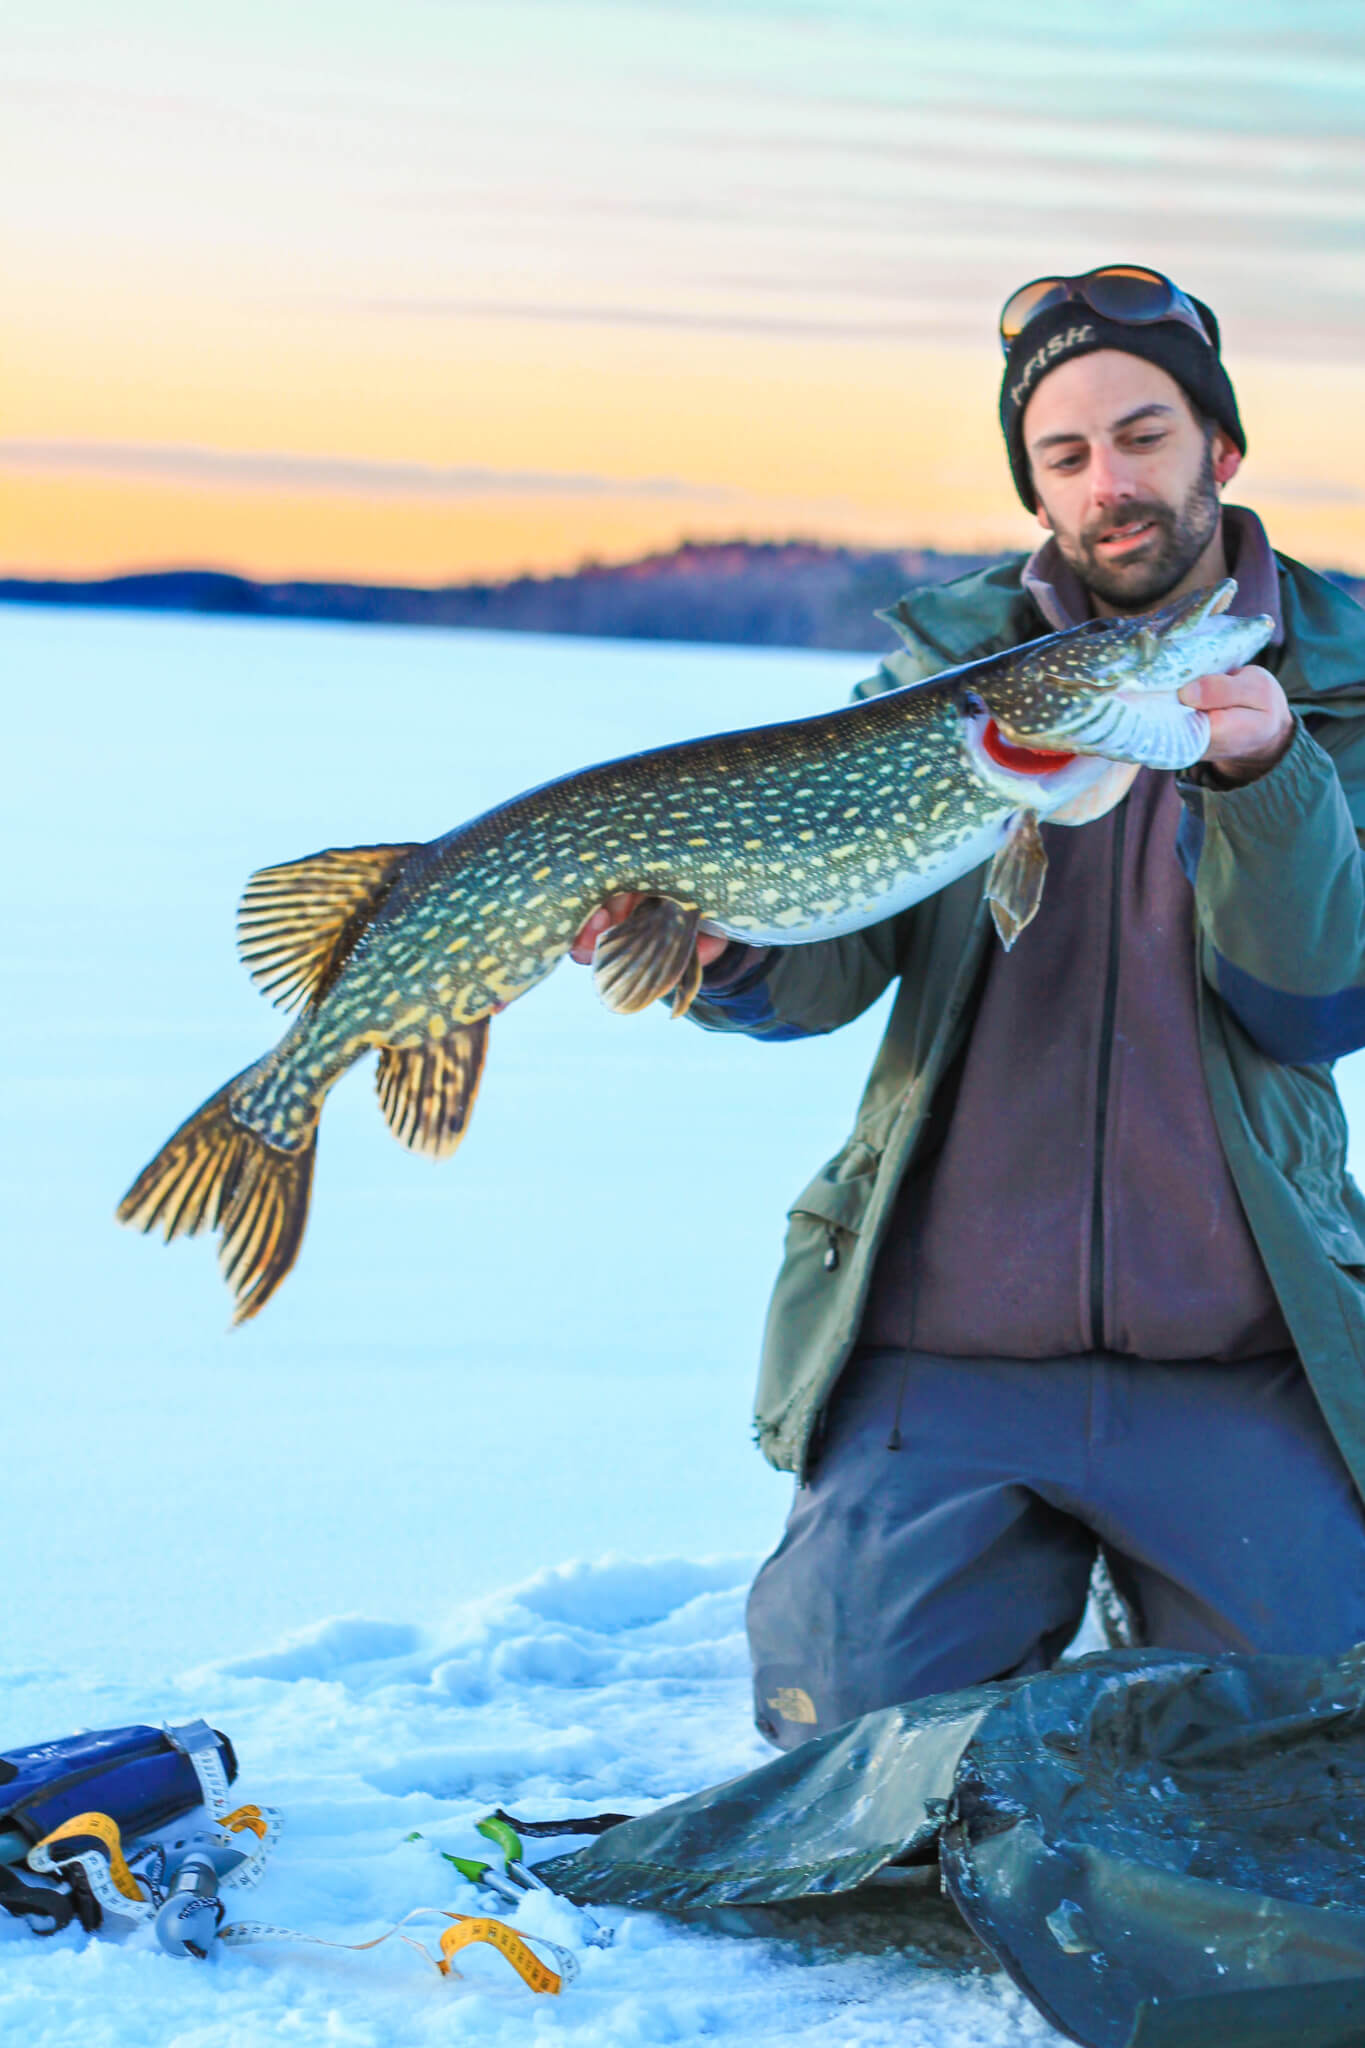 Sweden - Ice Fishing for Pike